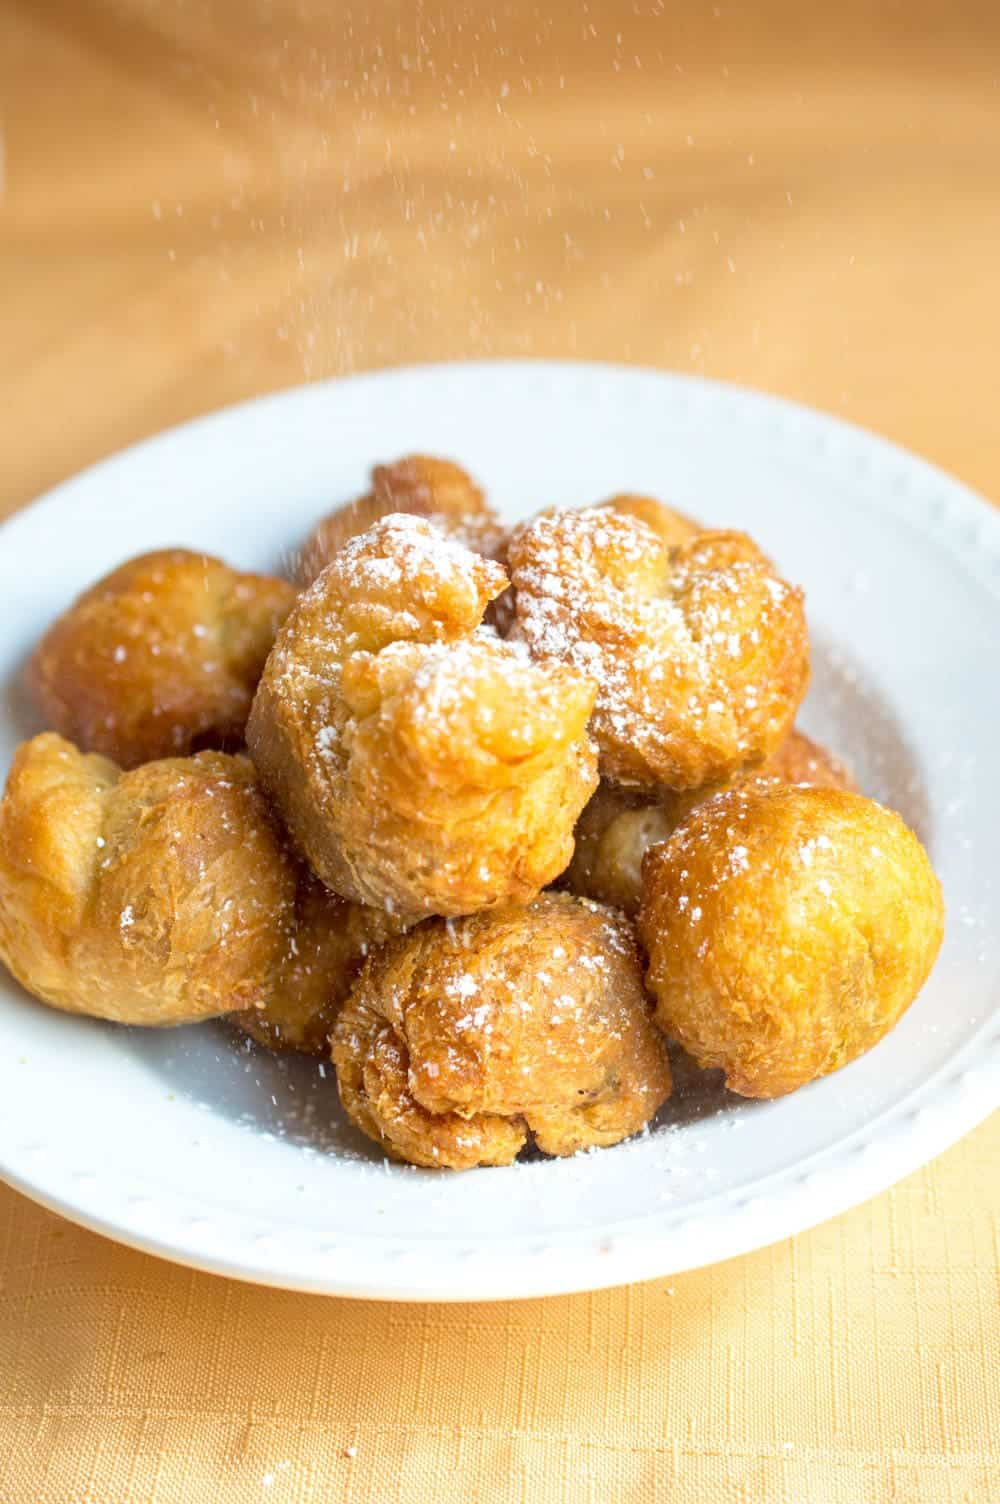 fried nutella dumplings on a plate with powdered sugar on top